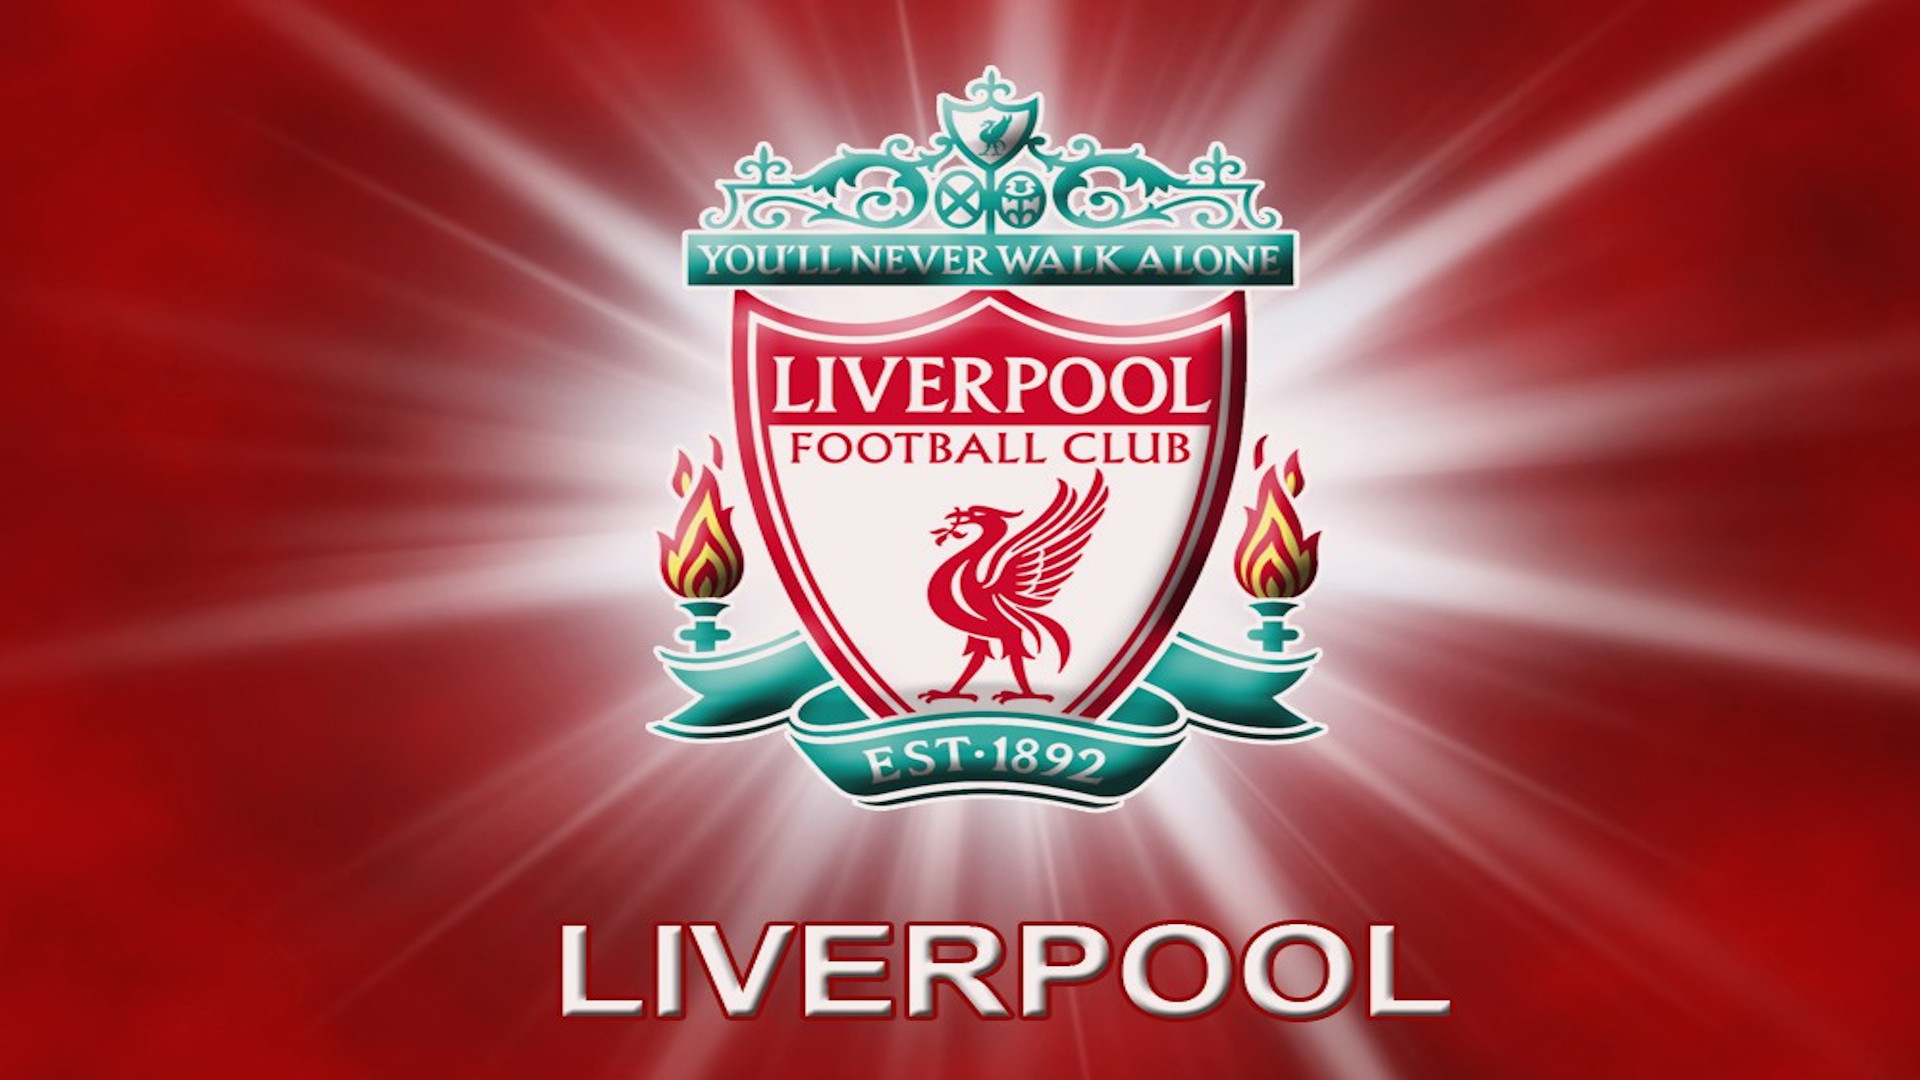 Liverpool Fc History And Club Facts Sportblis